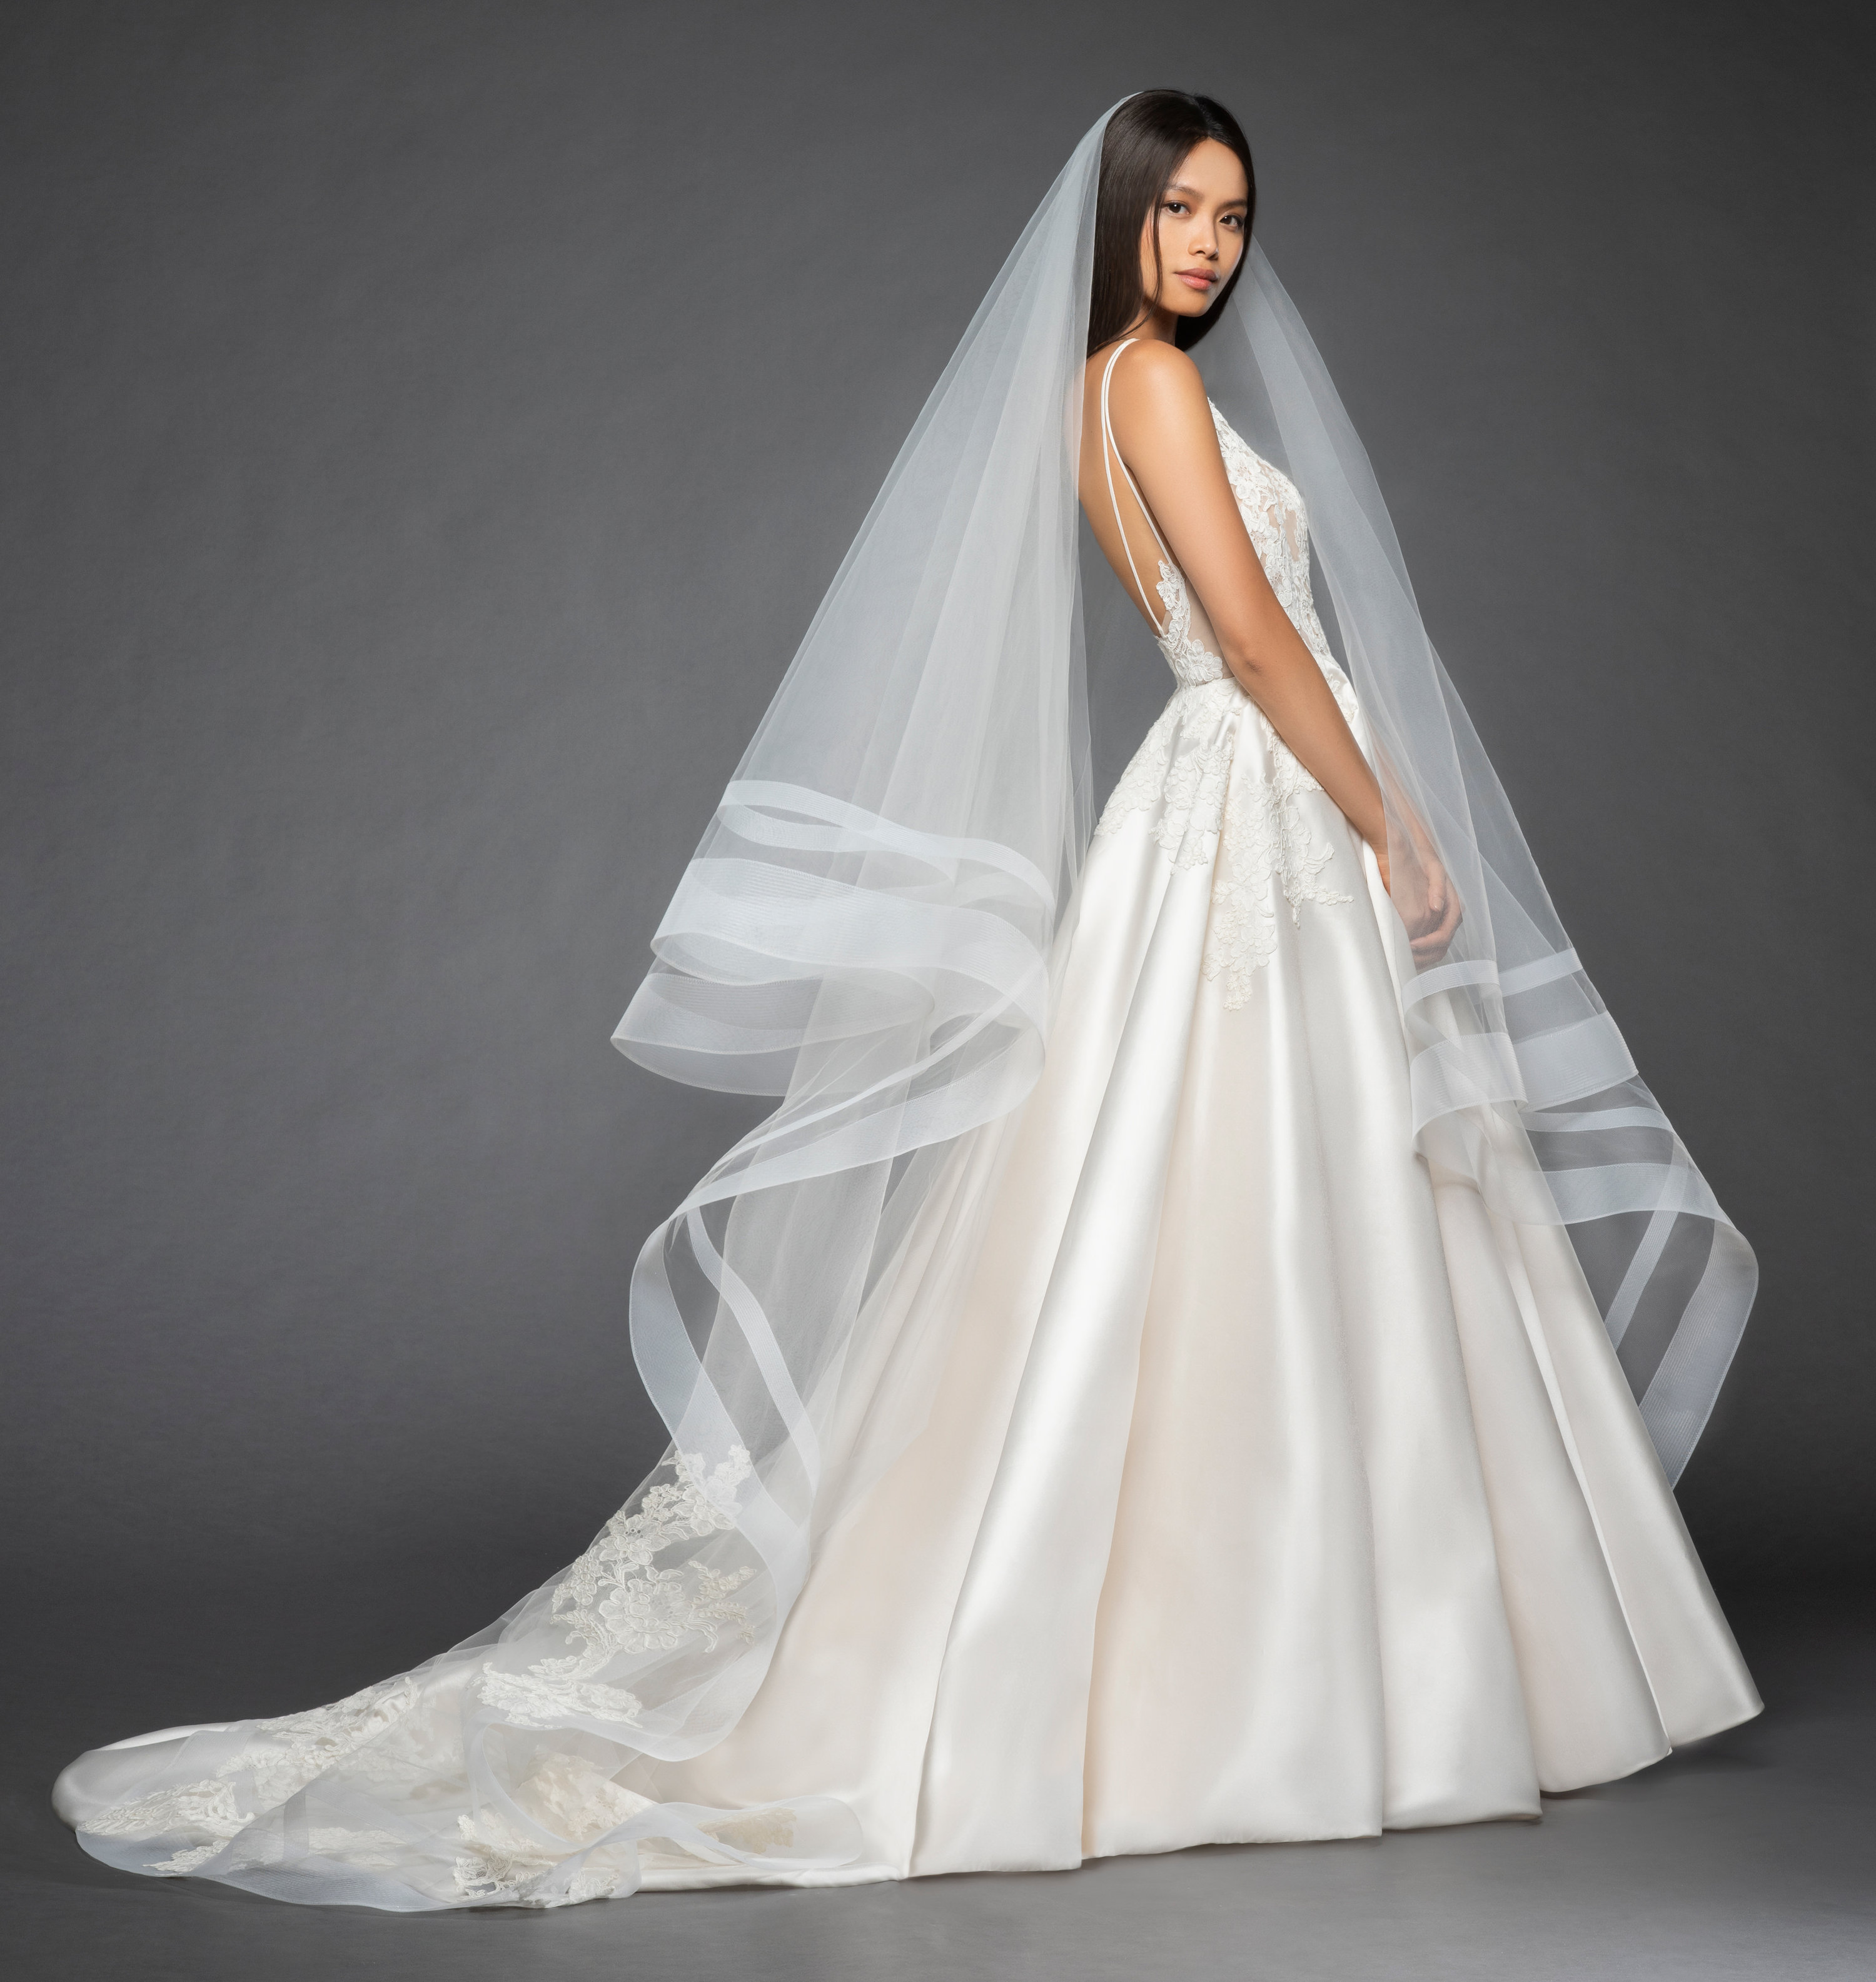 Price Of Lazaro Wedding Gowns: Bridal Gowns And Wedding Dresses By JLM Couture